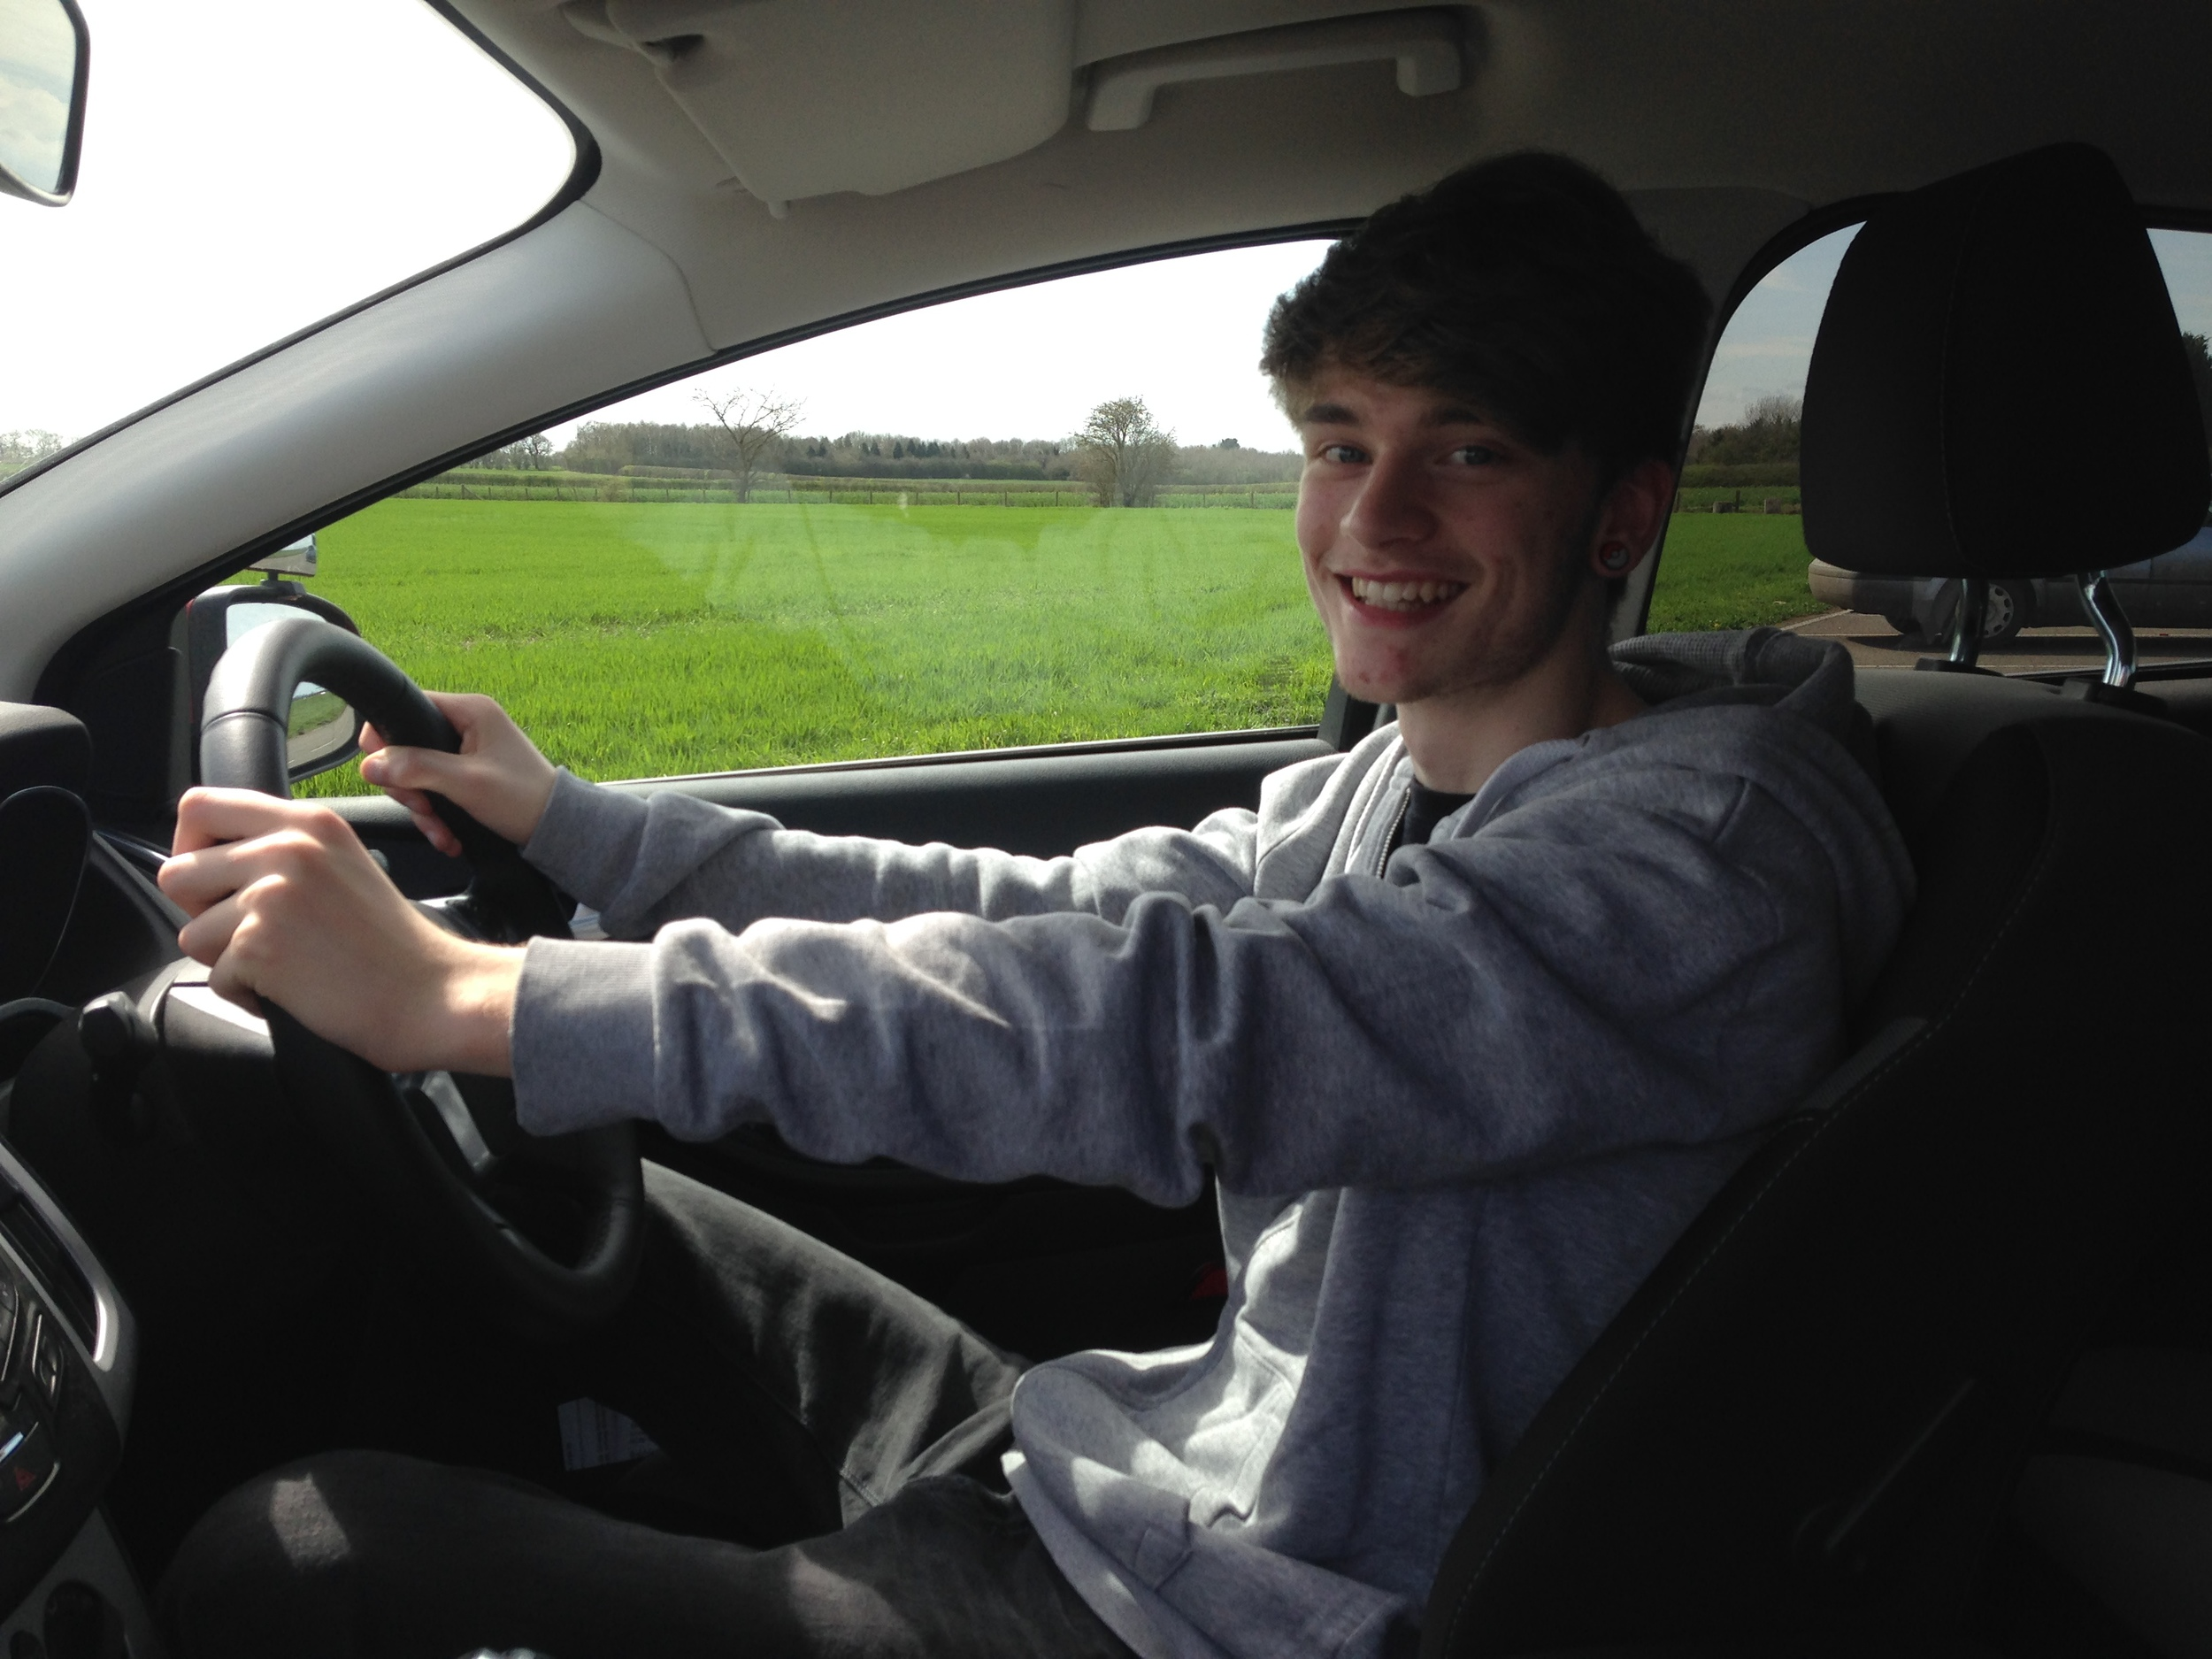 Rhys Clarke (16) off road lesson 12th April 2015 with Mark Prewett. Well done!